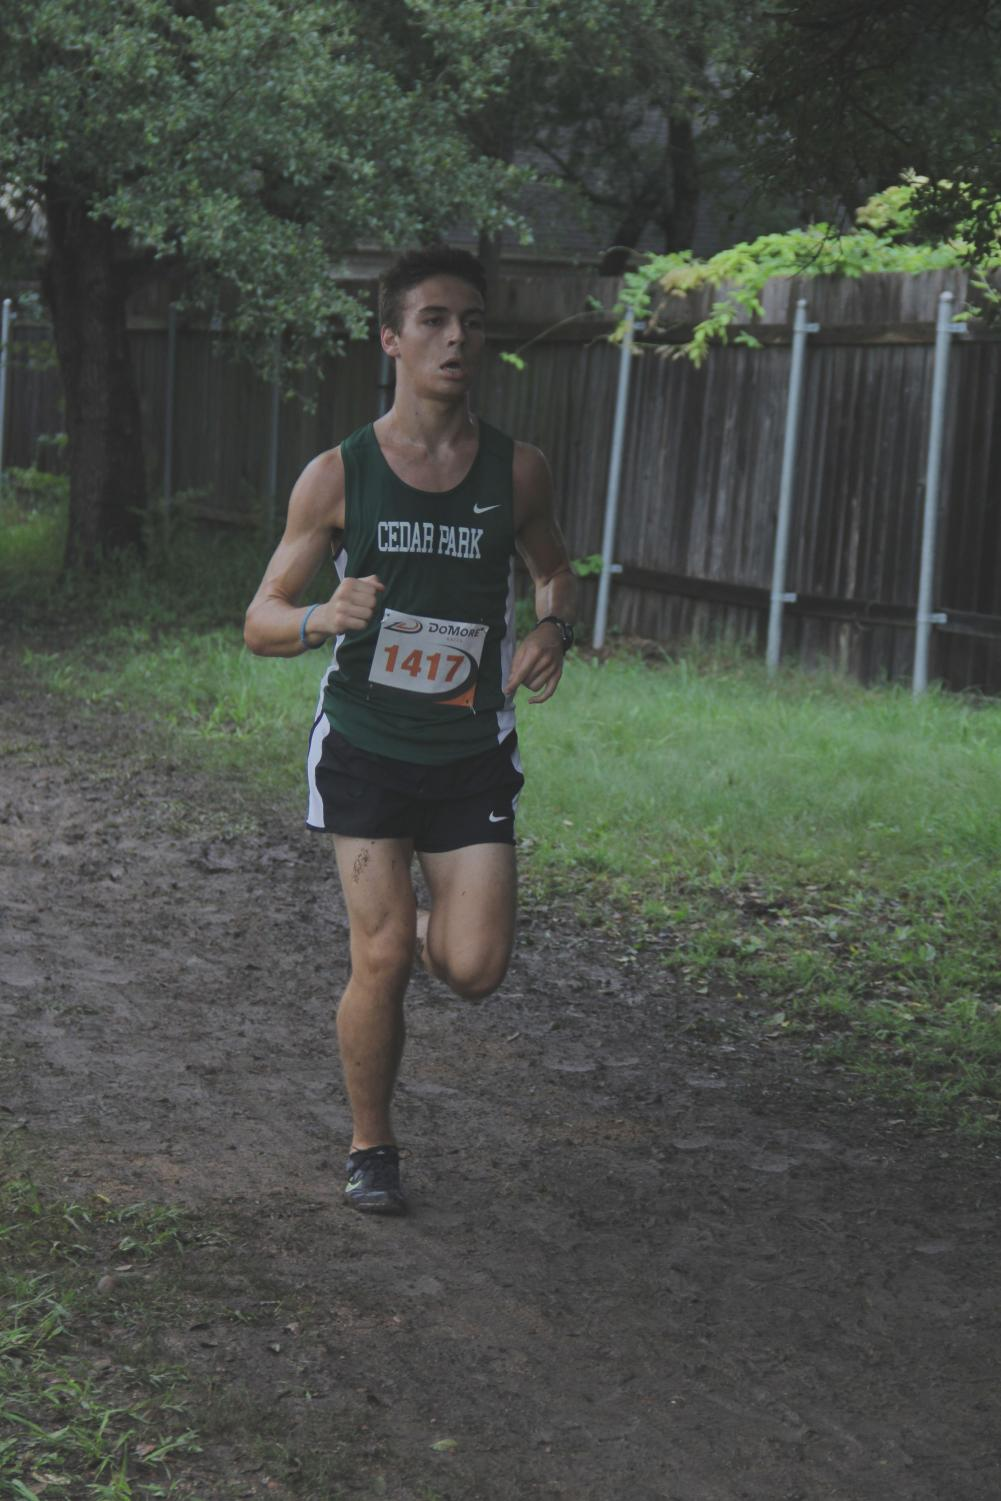 Dashing through the dirt, junior runner Tanner James looks to finish the CP Invitational strong.